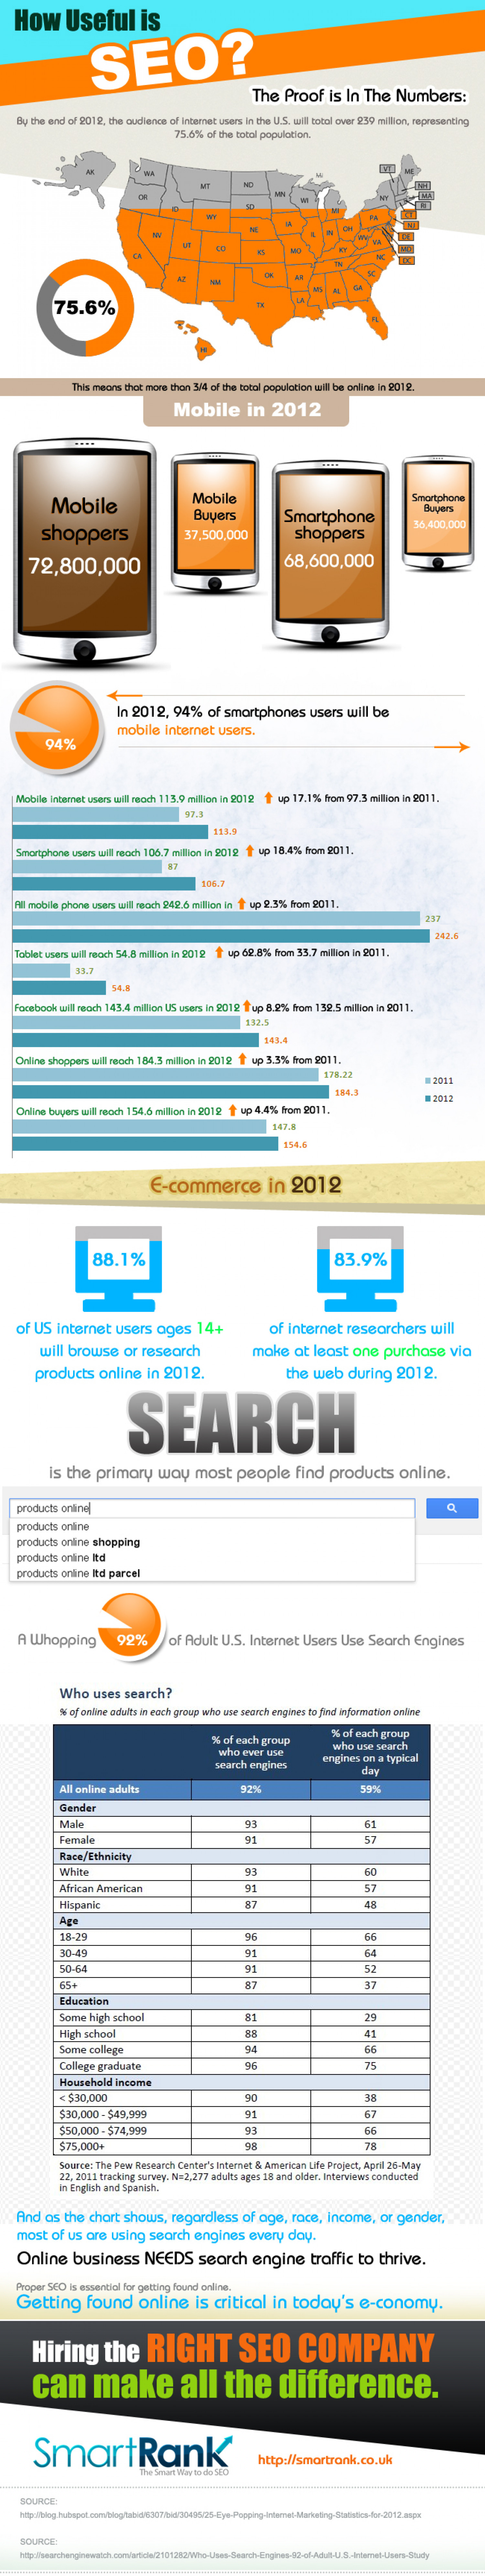 How Useful is SEO? Infographic